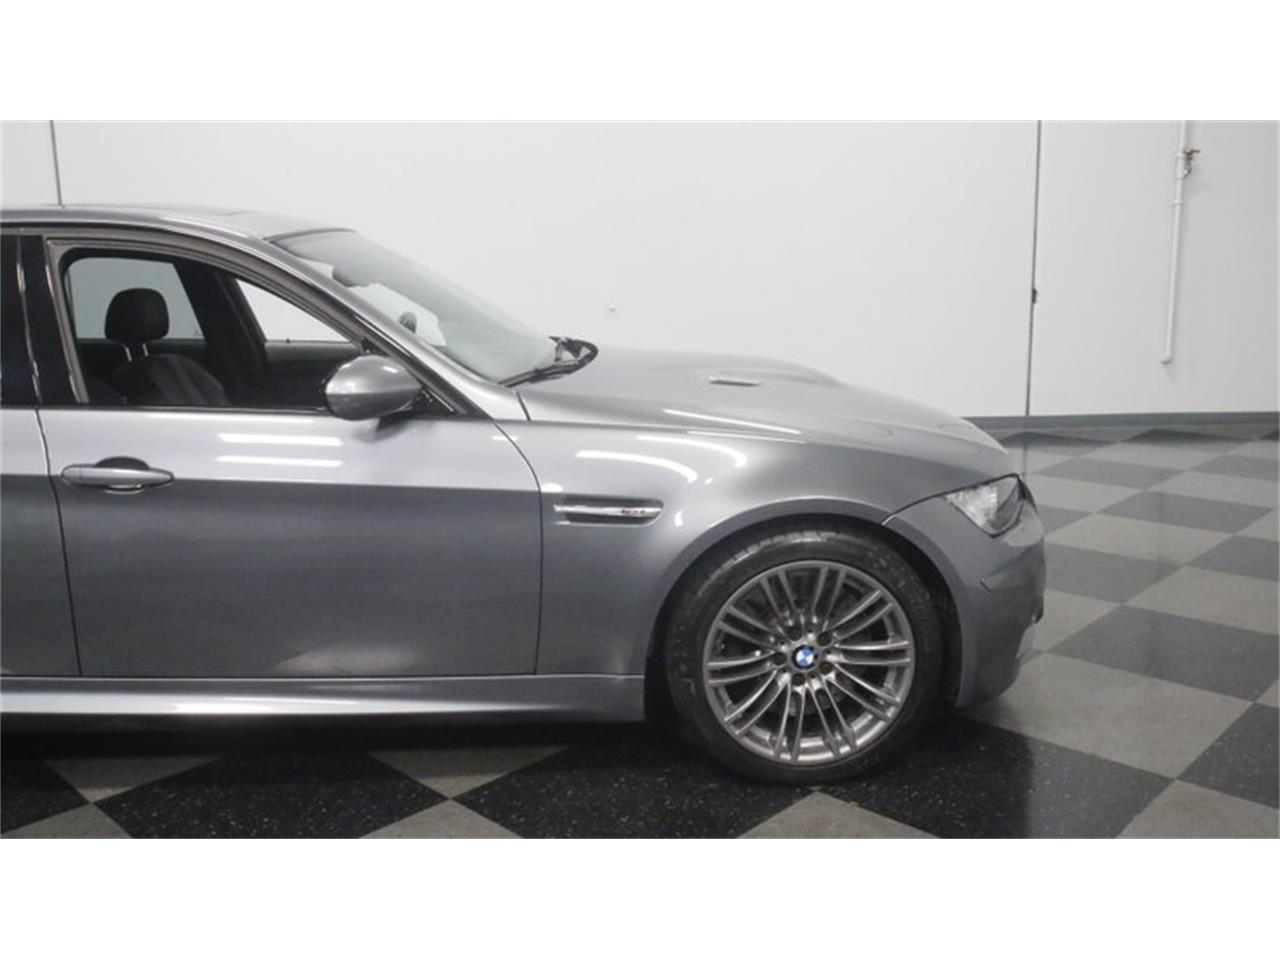 2010 BMW M3 for sale in Lithia Springs, GA – photo 32